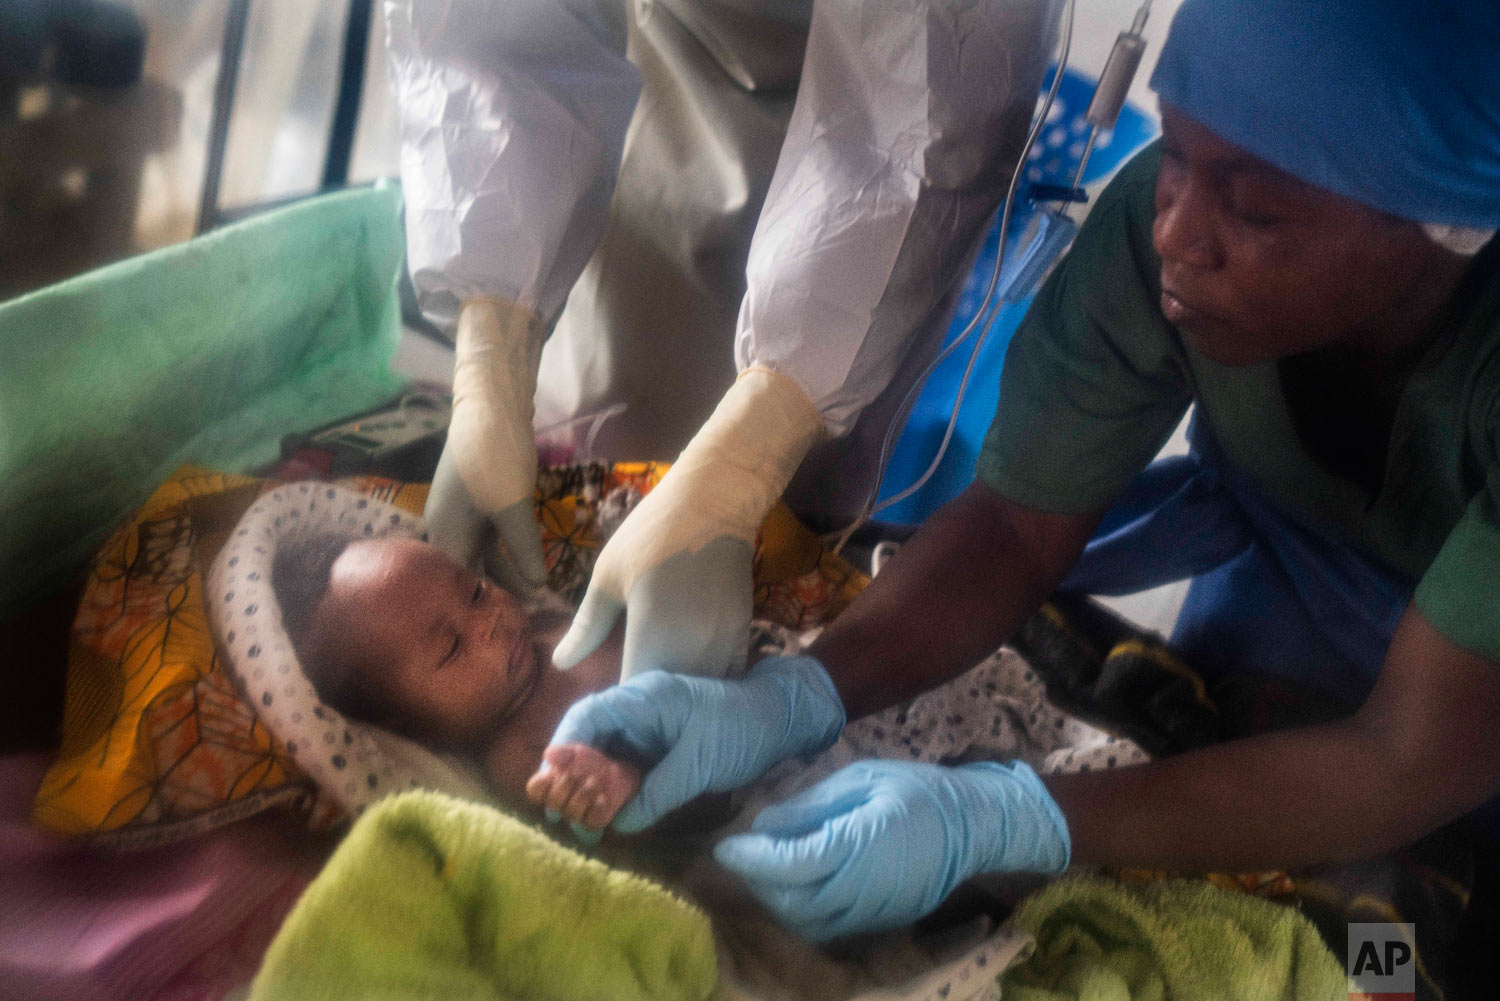 Health workers treat Amani Musanga, 6-weeks-old, at an Ebola treatment center in Beni, Congo, July 15 2019. (AP Photo/Jerome Delay)